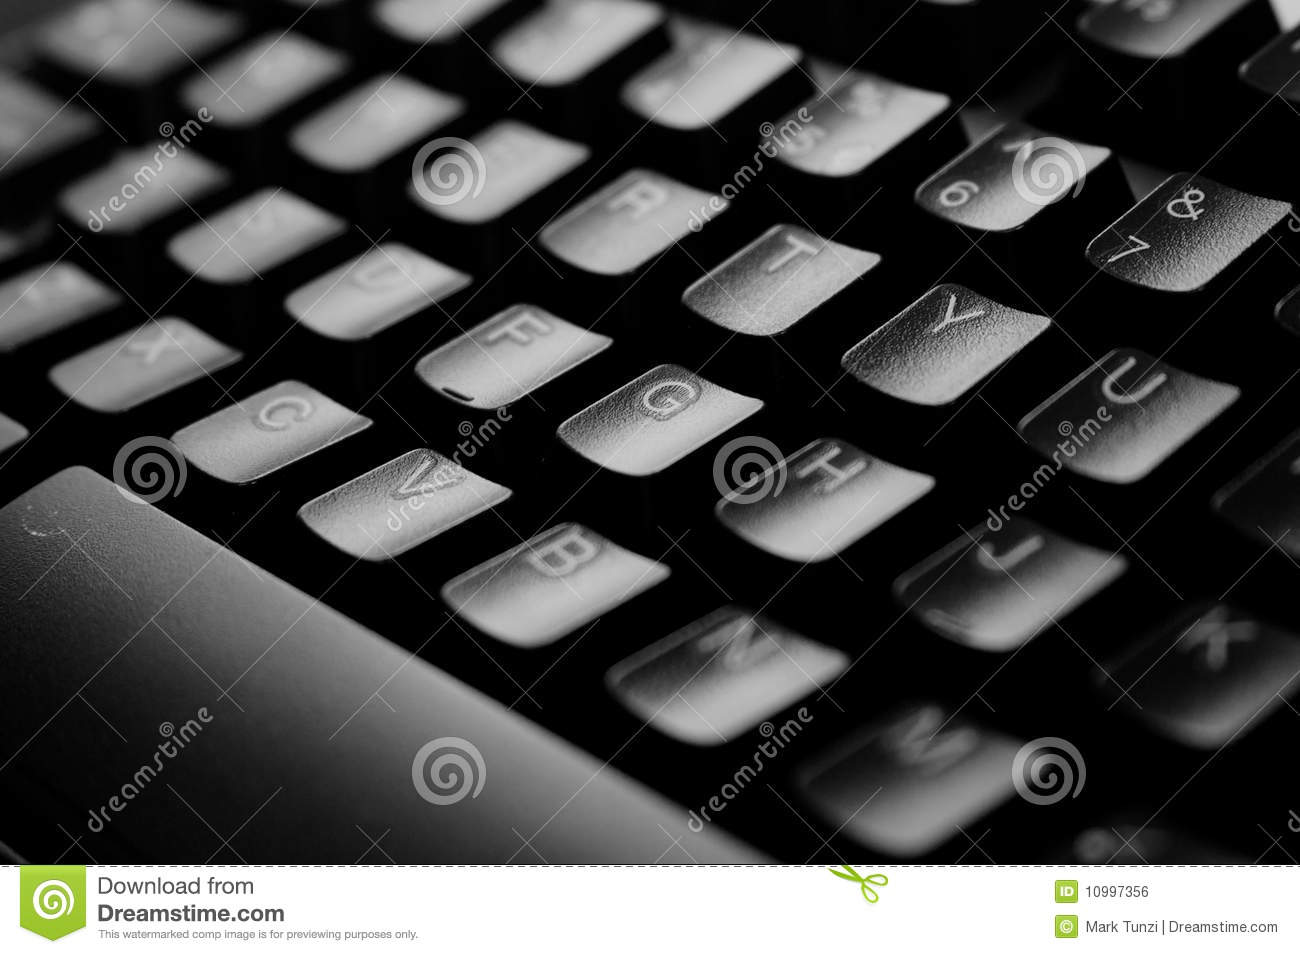 Clavier d 39 ordinateur image libre de droits image 10997356 for Photo d ordinateur